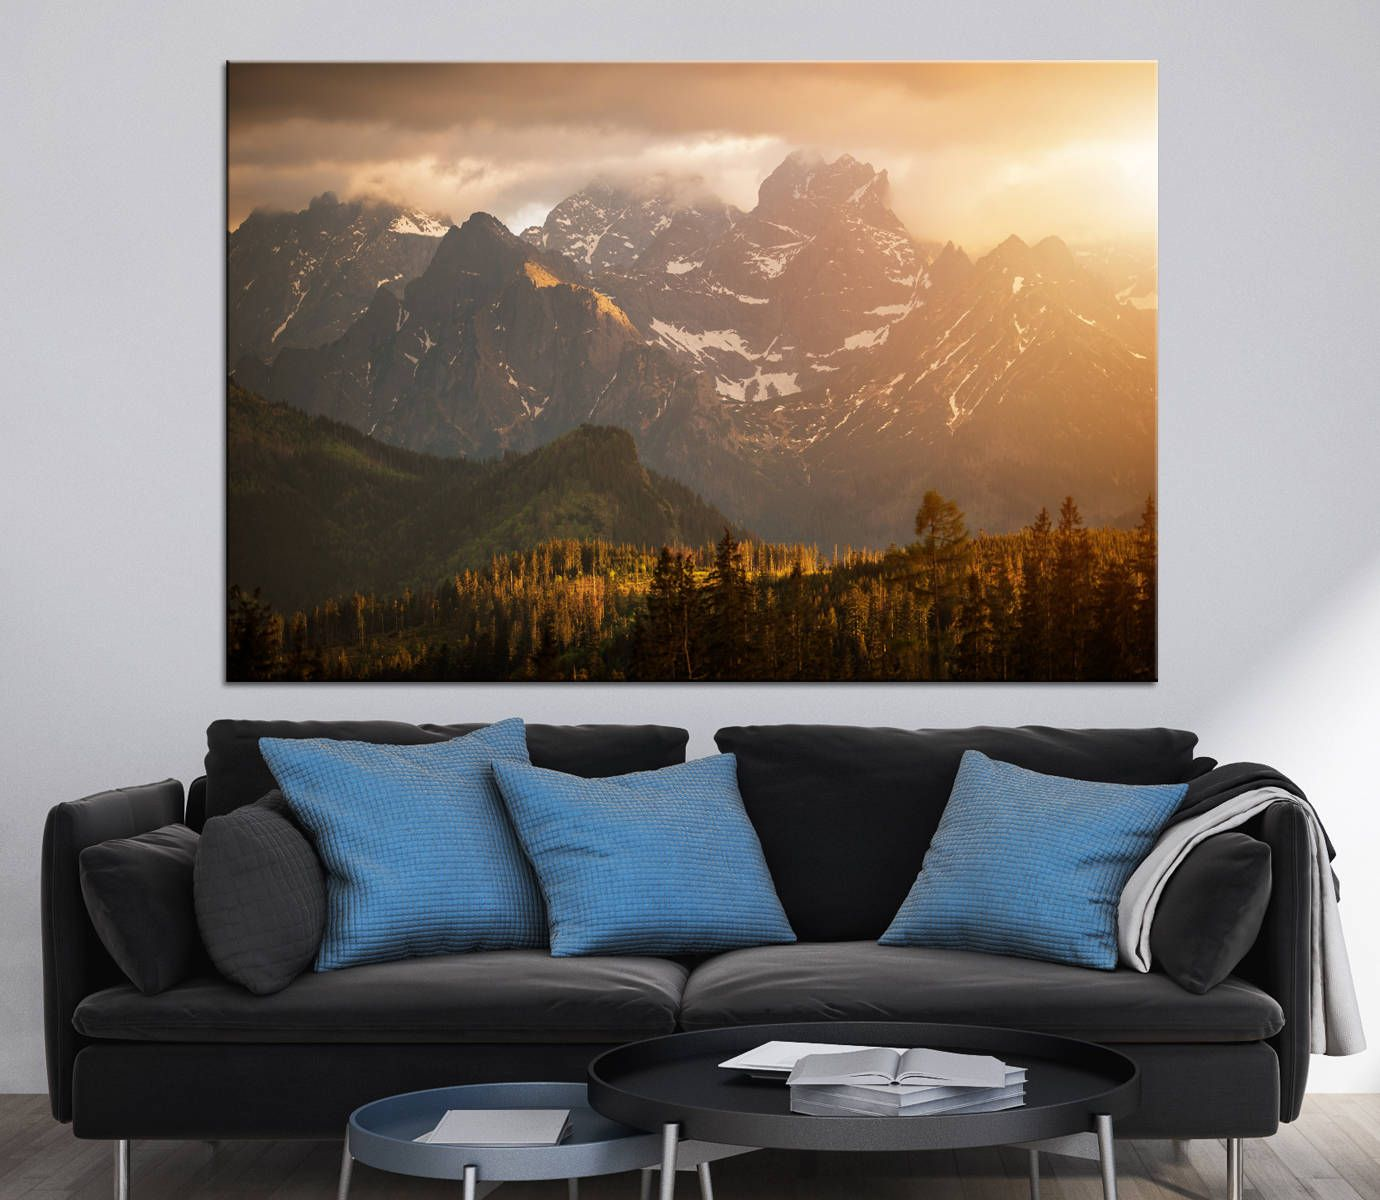 Superb Mountains Sunset Scenery Photoprint Multi Panel Canvas Print Wild Nature  Wall Art Decoration Extra Large Print